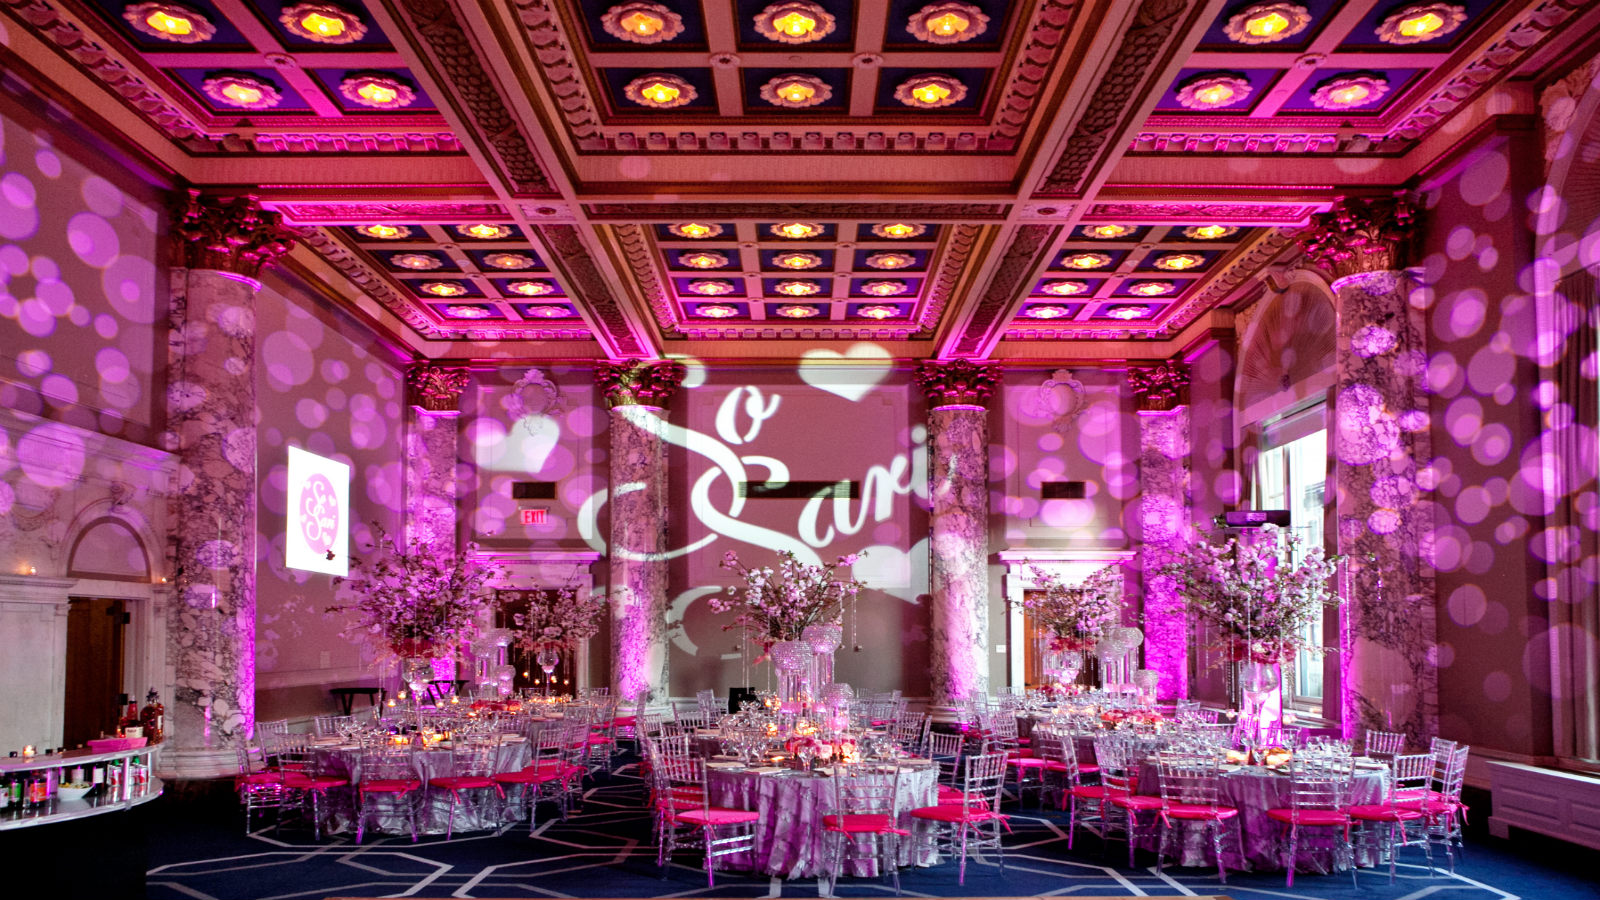 Manhattan Wedding Venues - Great Room W Union Square